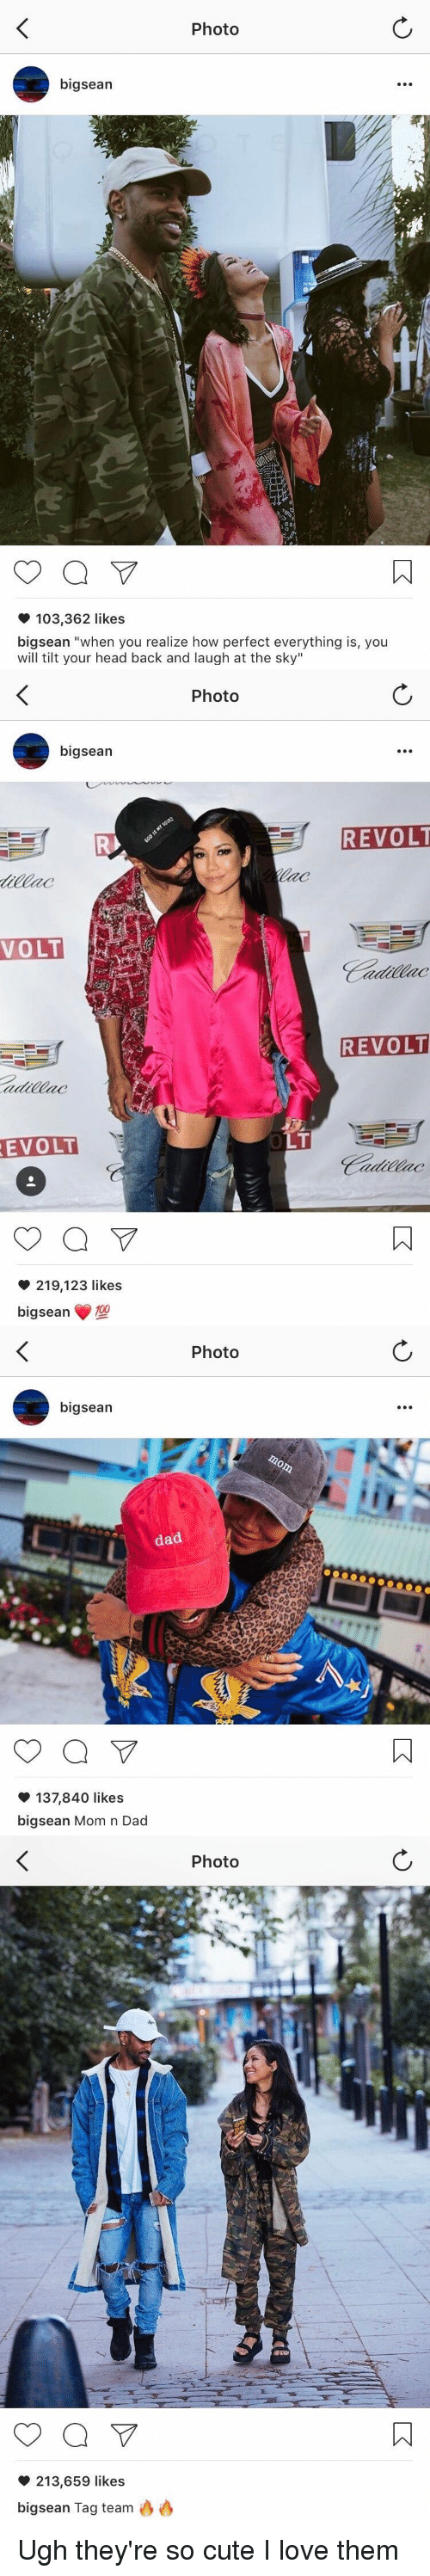 """tag team: Photo  bigsean  103,362 likes  bigsean """"when you realize how perfect everything is, you  will tilt your head back and laugh at the sky""""   bigsean  VOLT  REVOLT  a  219,123 likes  big sean  120  Photo  REVOLT  REVOLT   Photo  bigsean  dad  a  137,840 likes  big sean Mom n Dad   a  213,659 likes  bigsean Tag team  Photo Ugh they're so cute I love them"""